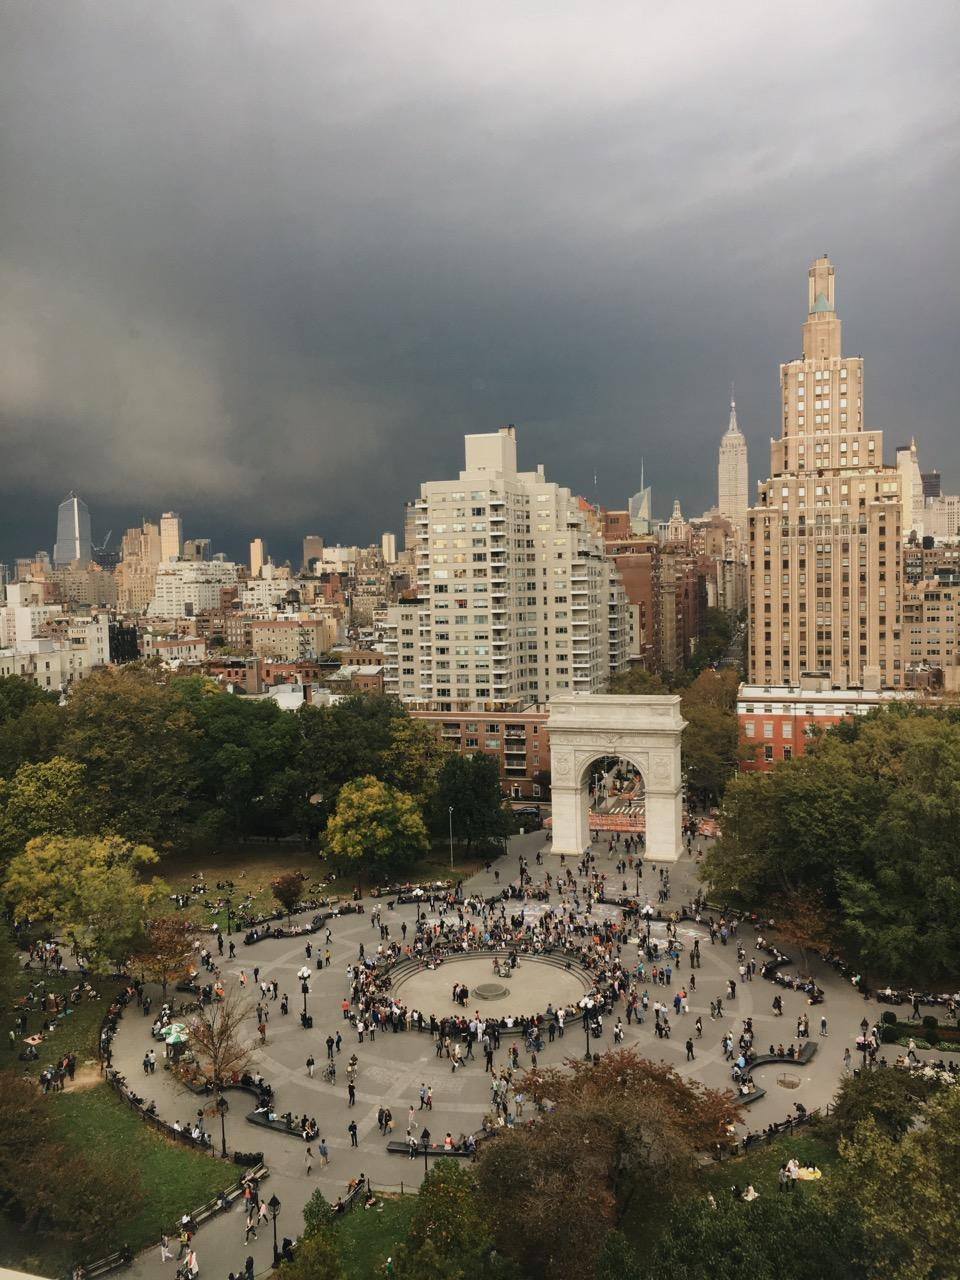 New York has experienced severe weather conditions in the past few years, prompting NYU Langone to fortify itself.